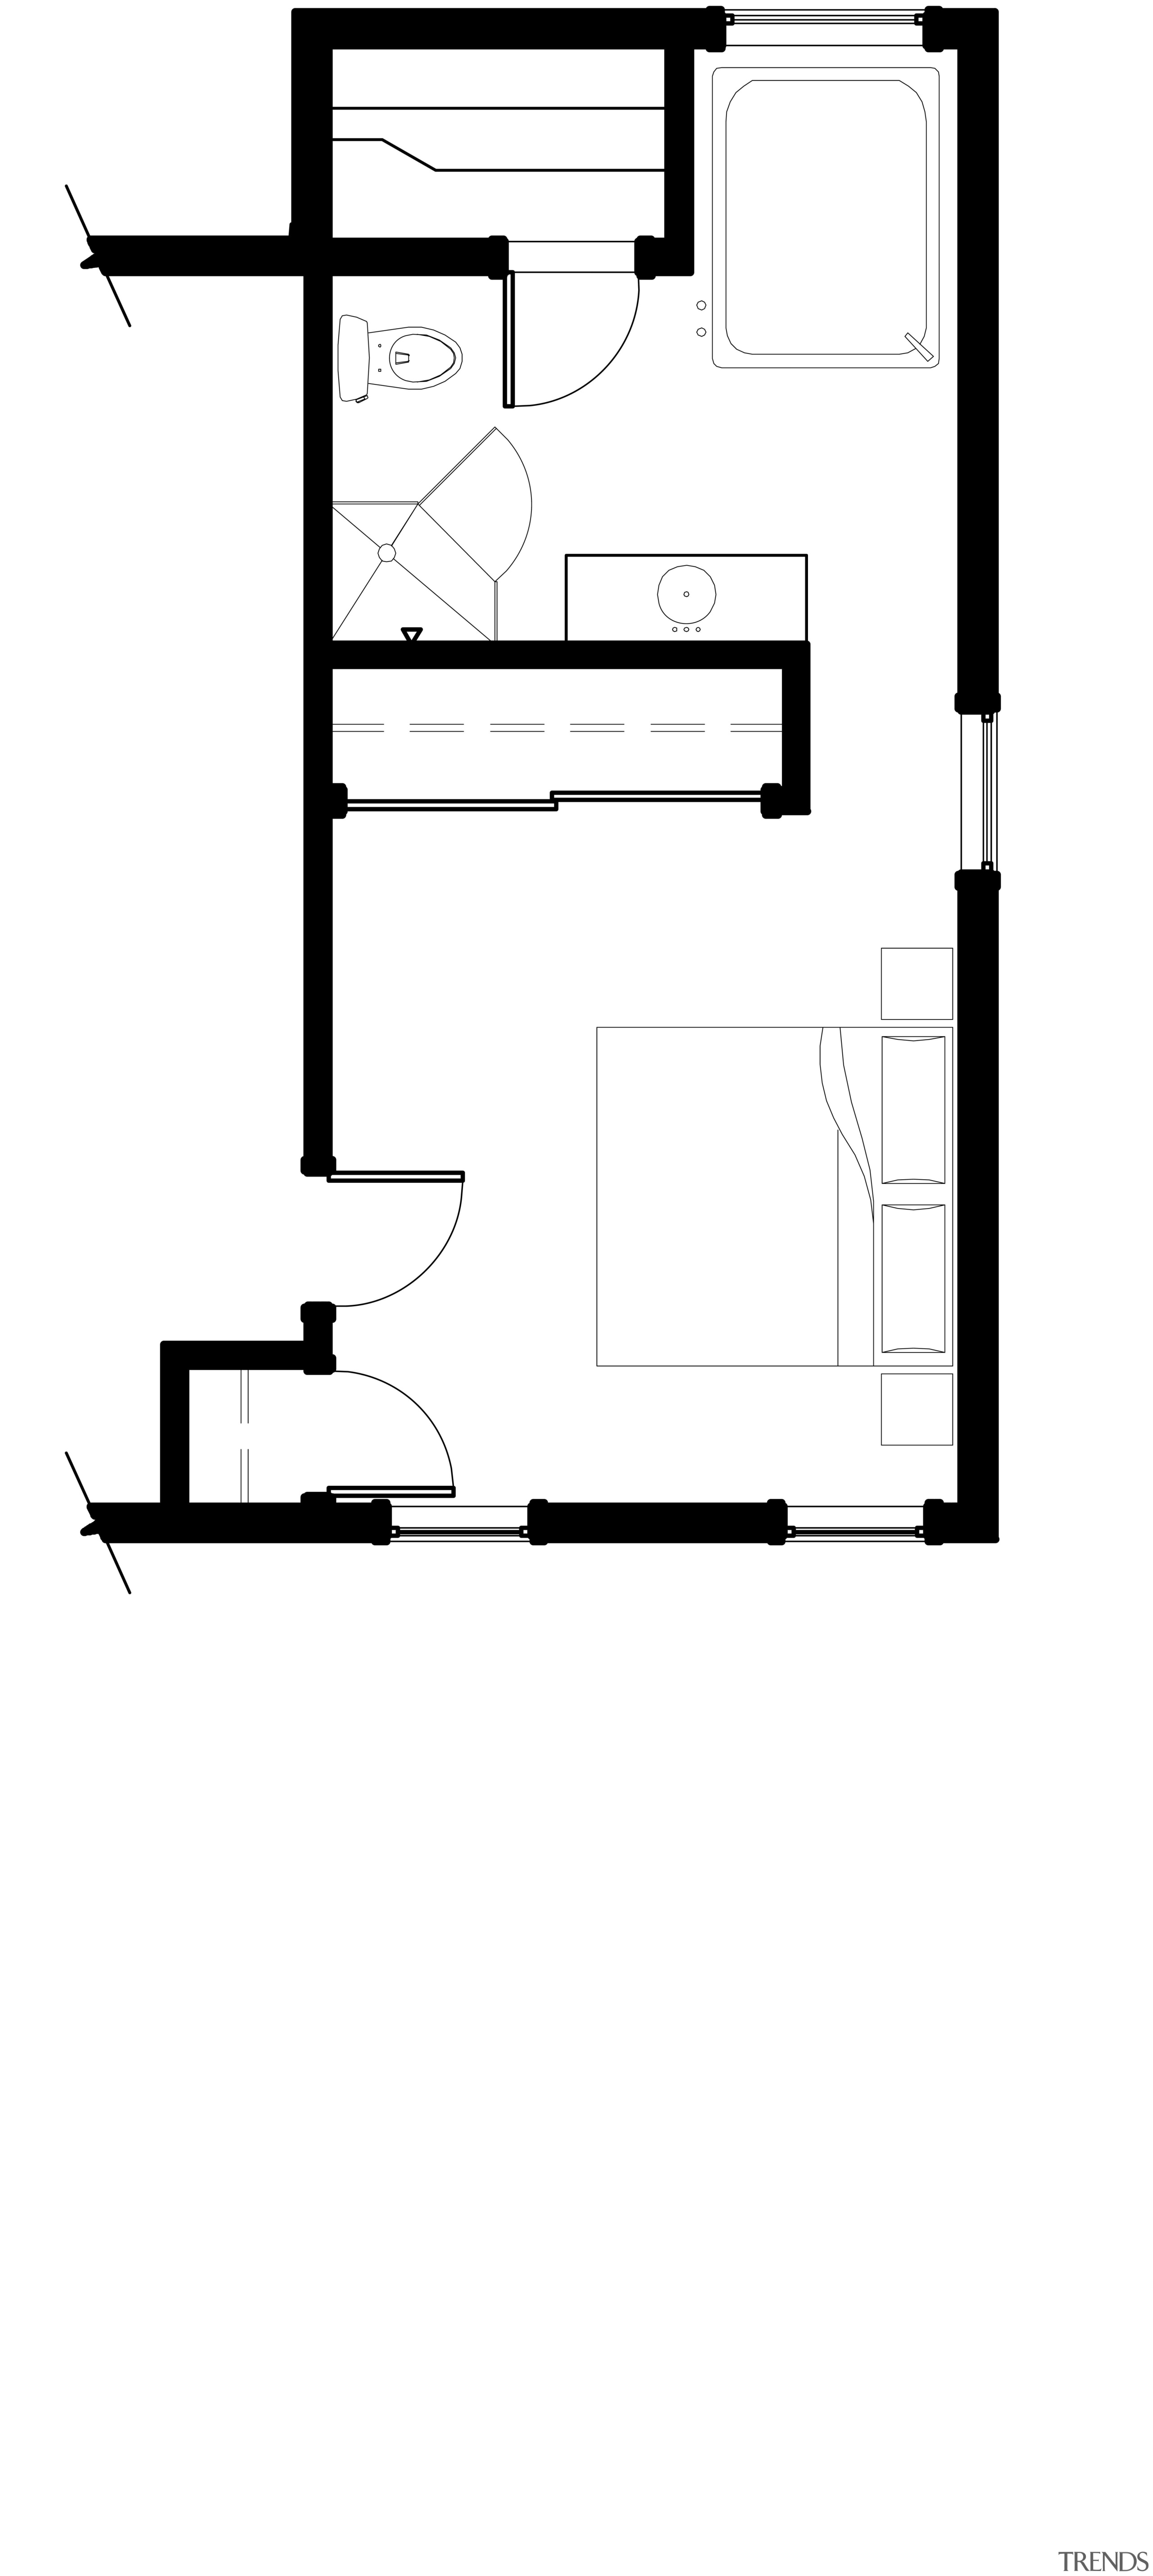 This home and kitchen was designed by Finne angle, area, black, black and white, design, diagram, drawing, floor plan, font, furniture, line, line art, product, product design, rectangle, square, structure, text, white, white